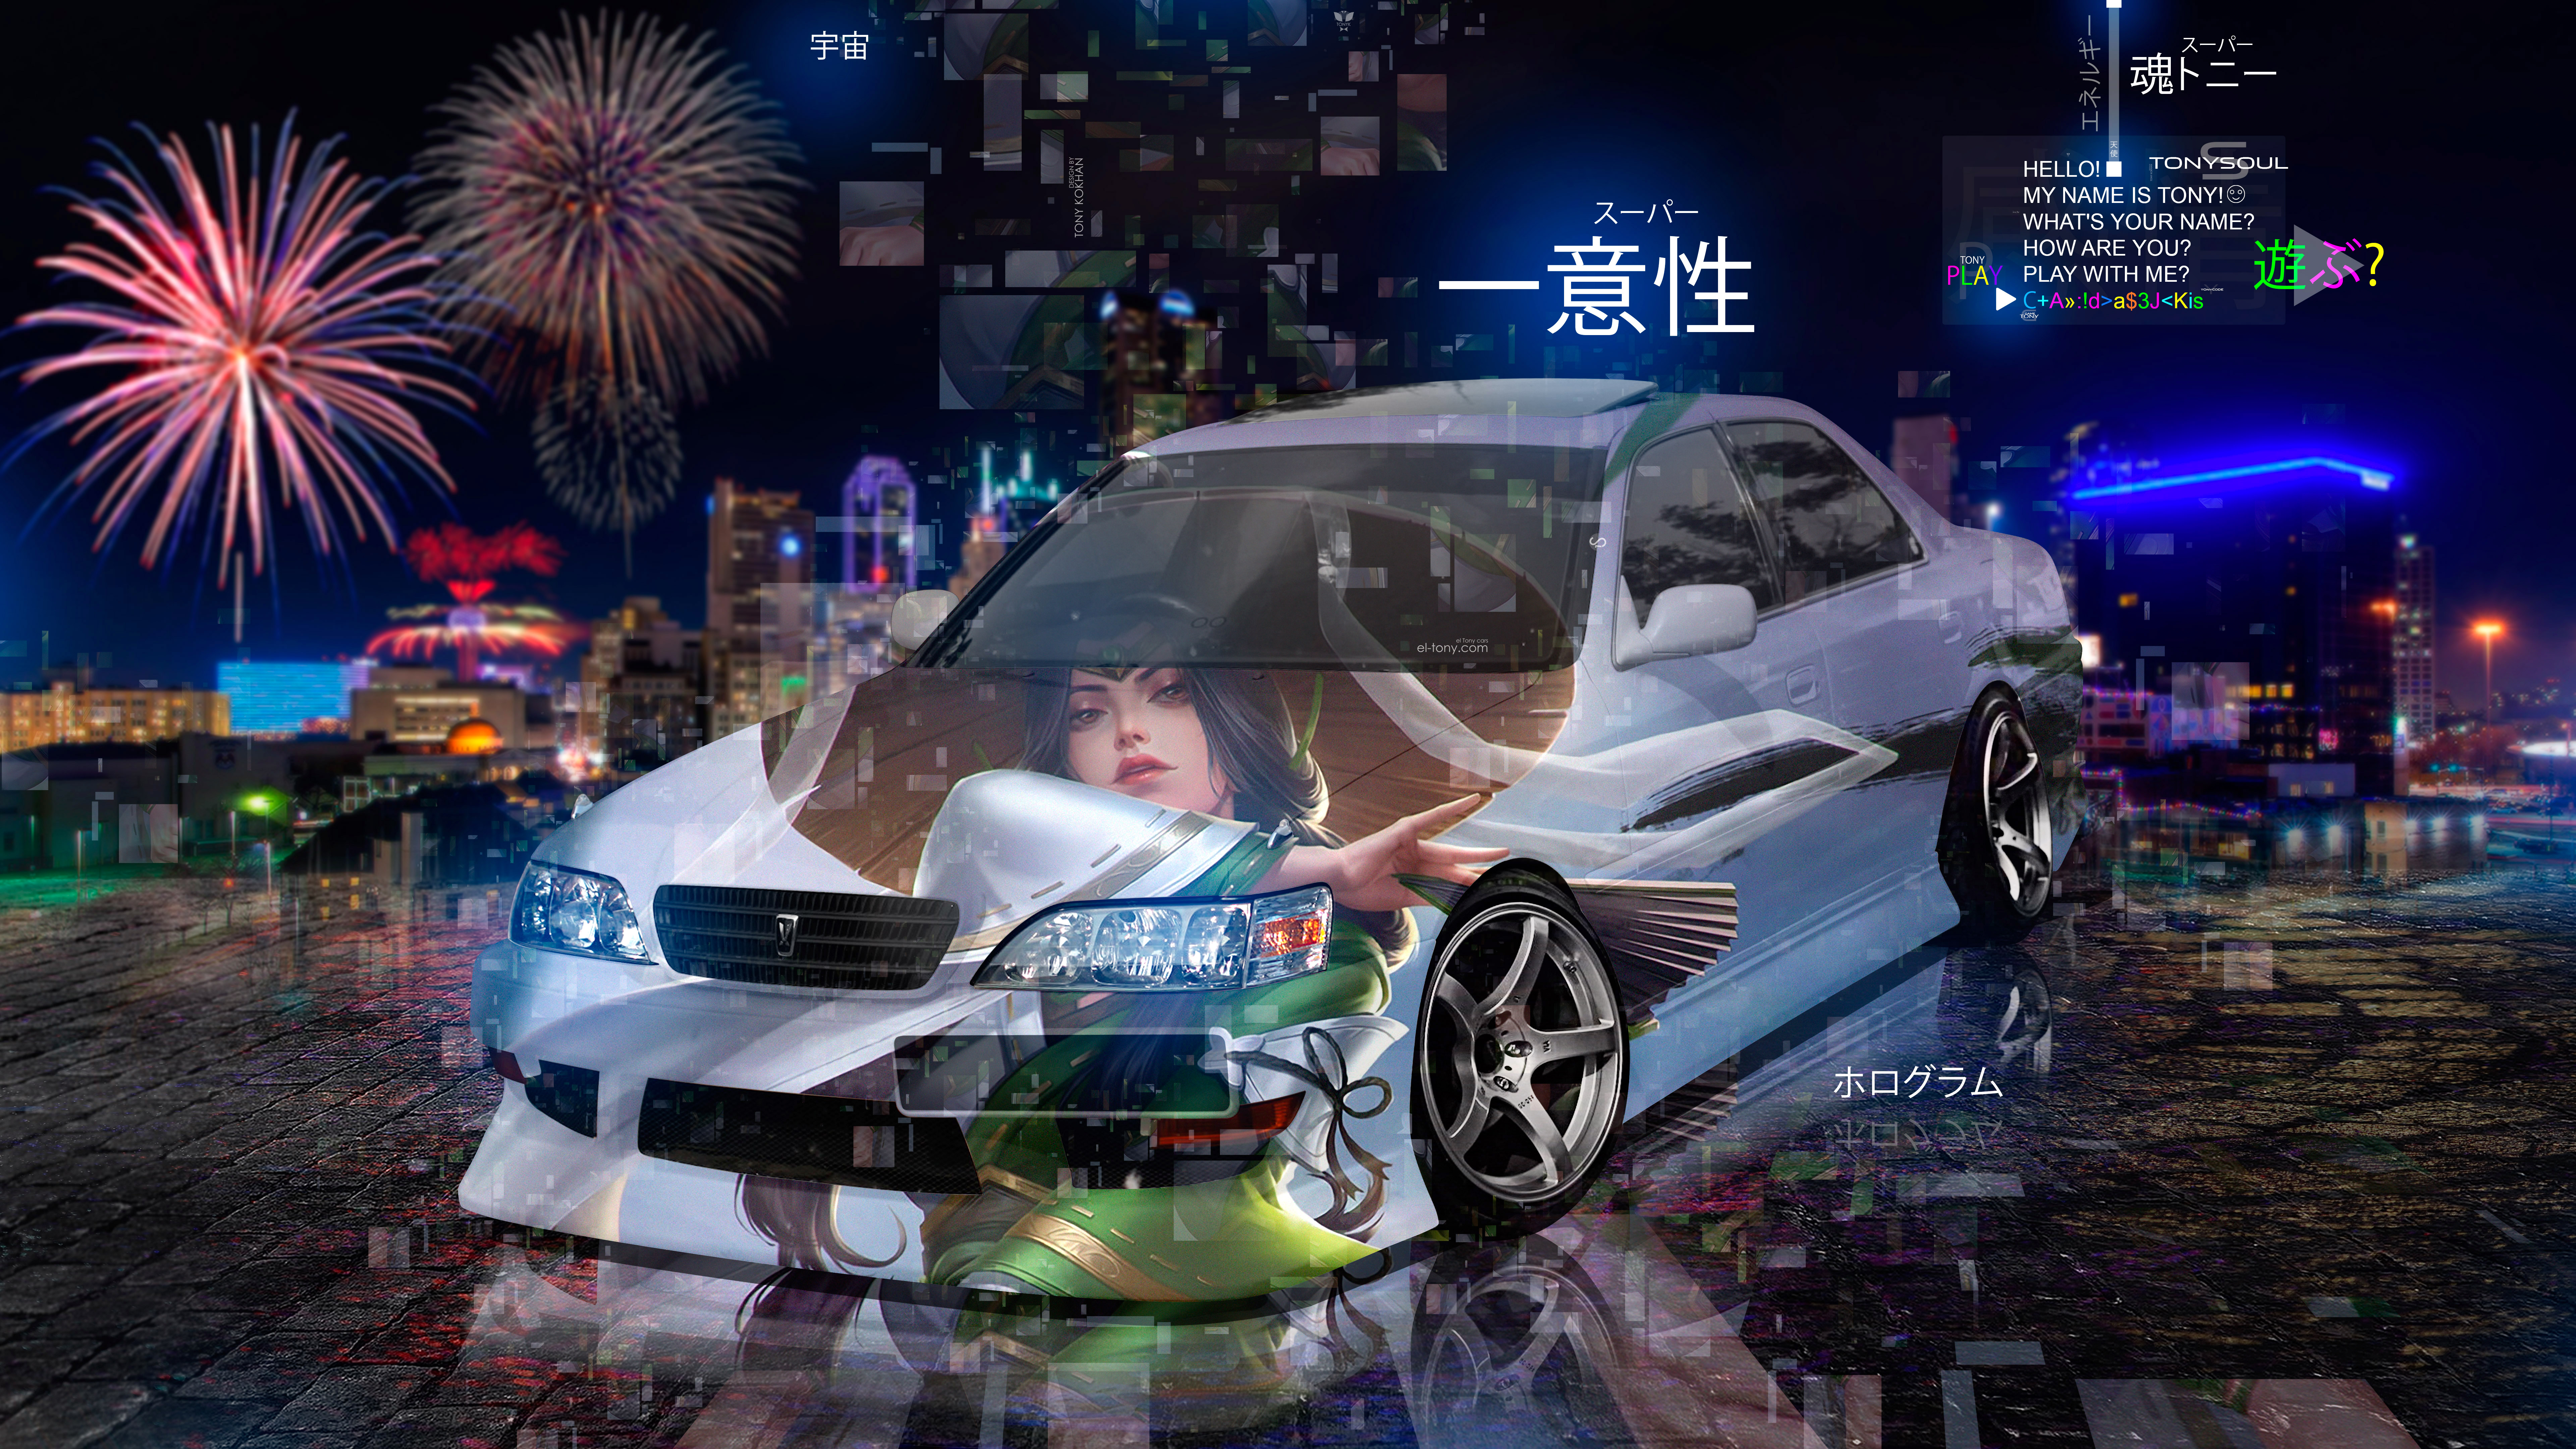 Toyota-Cresta-JZX100-JDM-Tuning-Anime-Girl-Super-Uniqueness-TonySoul-Universe-TonyCode-Night-City-Art-Car-2020-Multicolors-8K-Wallpapers-design-by-Tony-Kokhan-www.el-tony.com-image